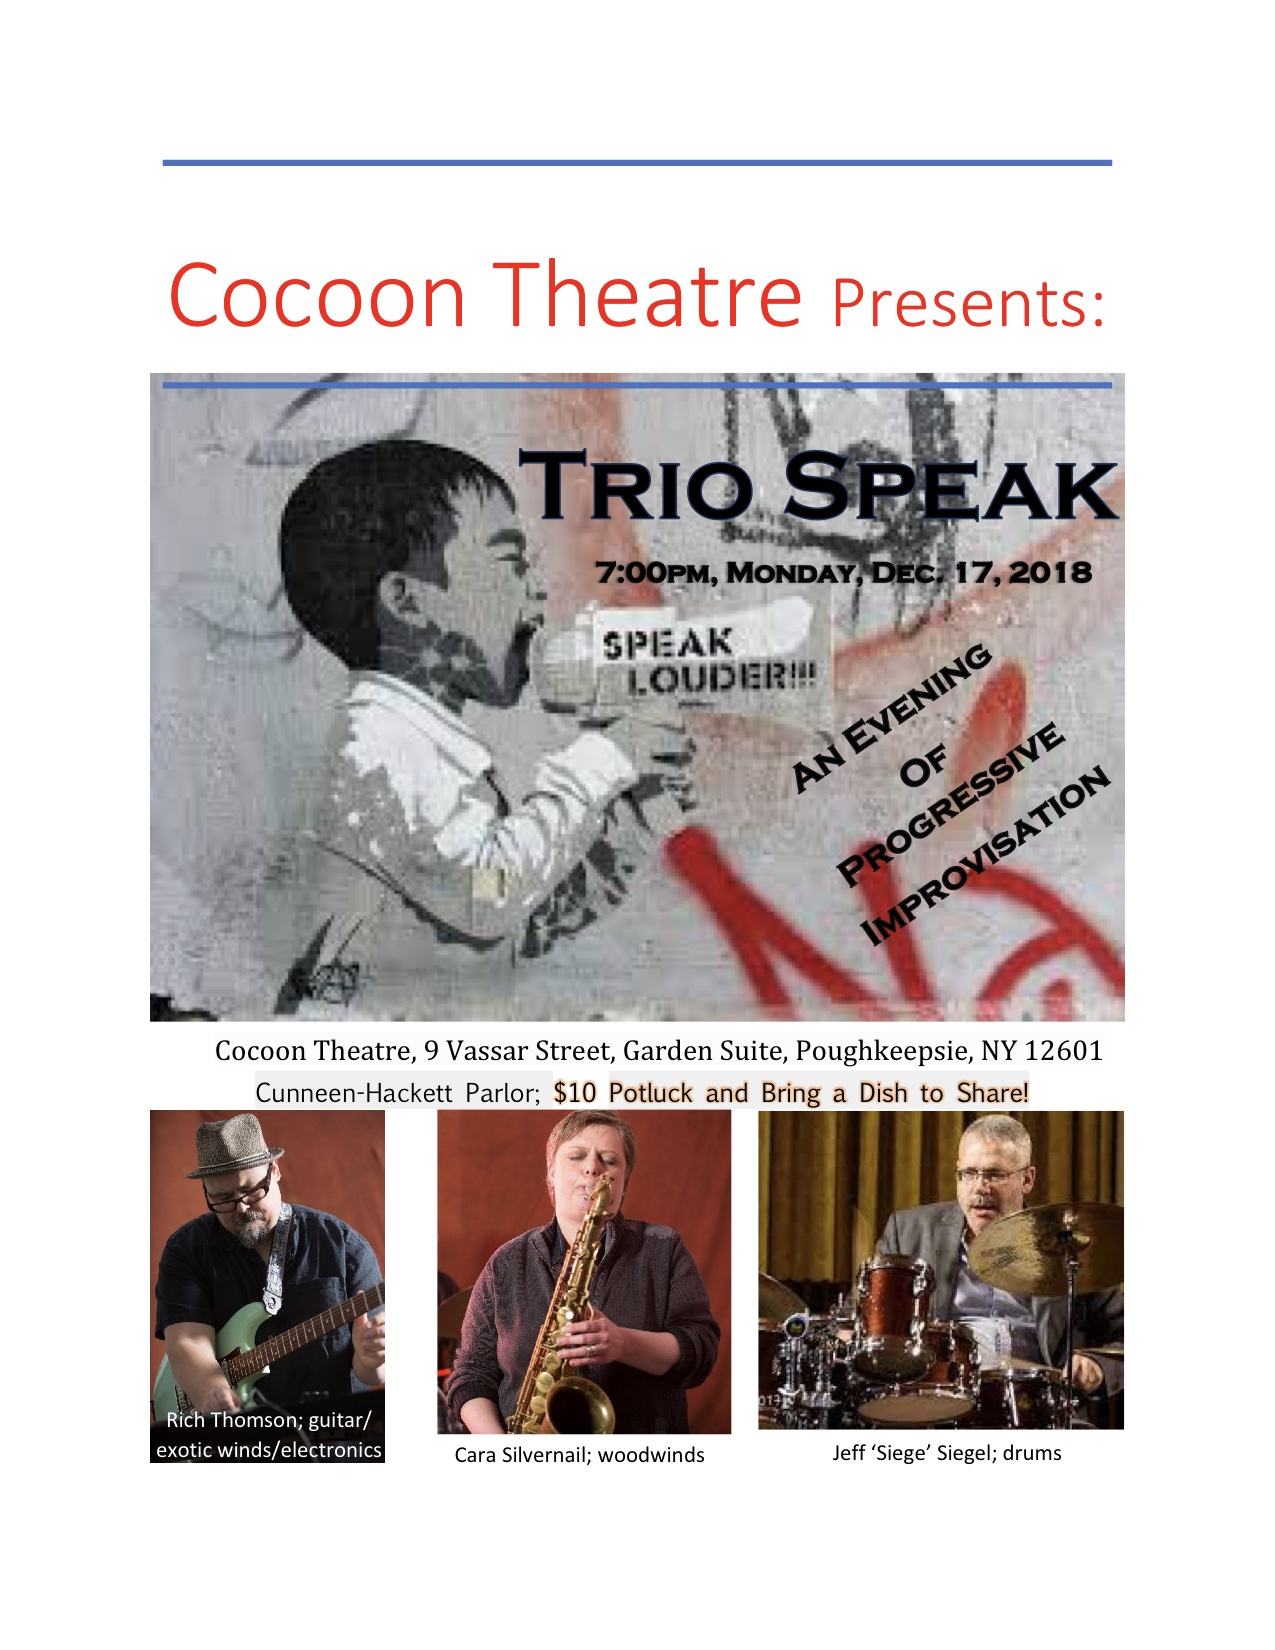 Trio Speak for Cocoon Theatre.jpg